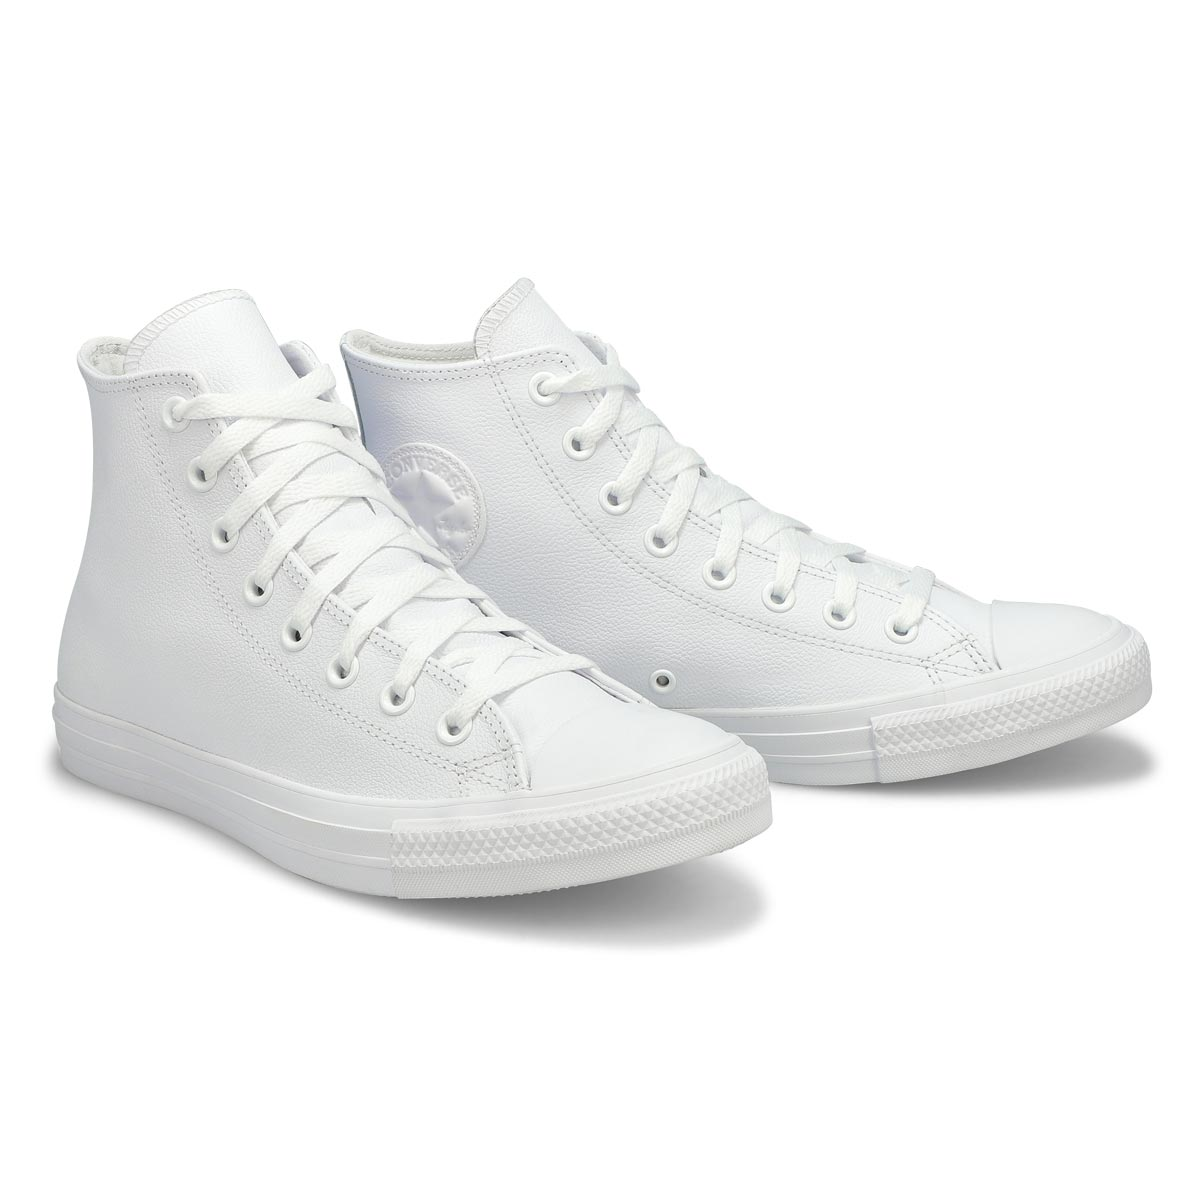 Espa CTAS Leather Hi, blc/blc, hom.